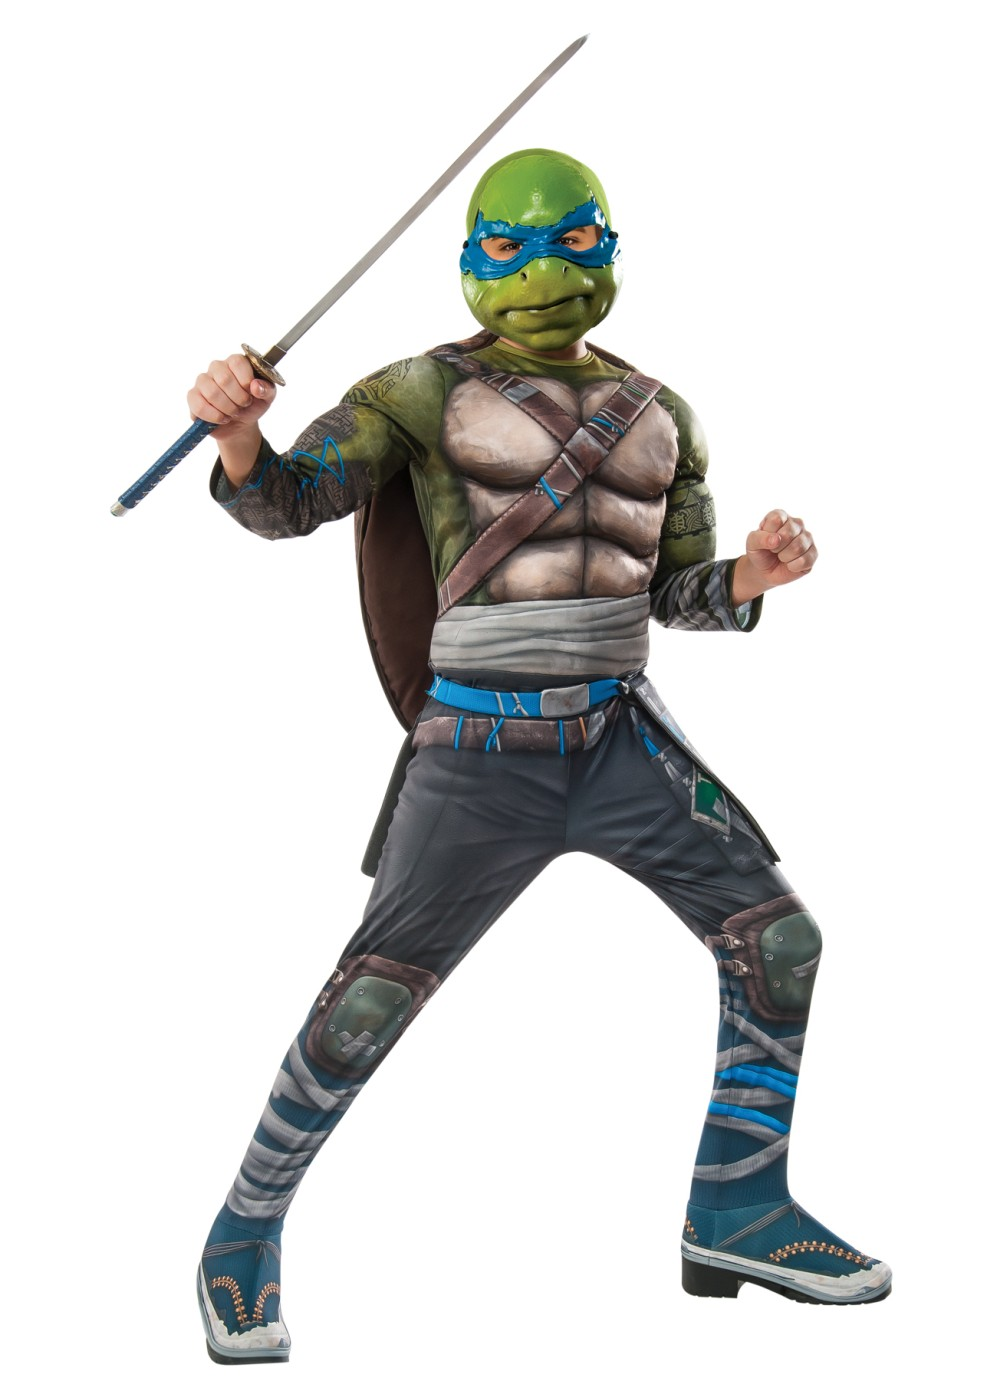 Teenage Mutant Ninja Turtles 2 Leonardo Boys Costume Superhero Costumes